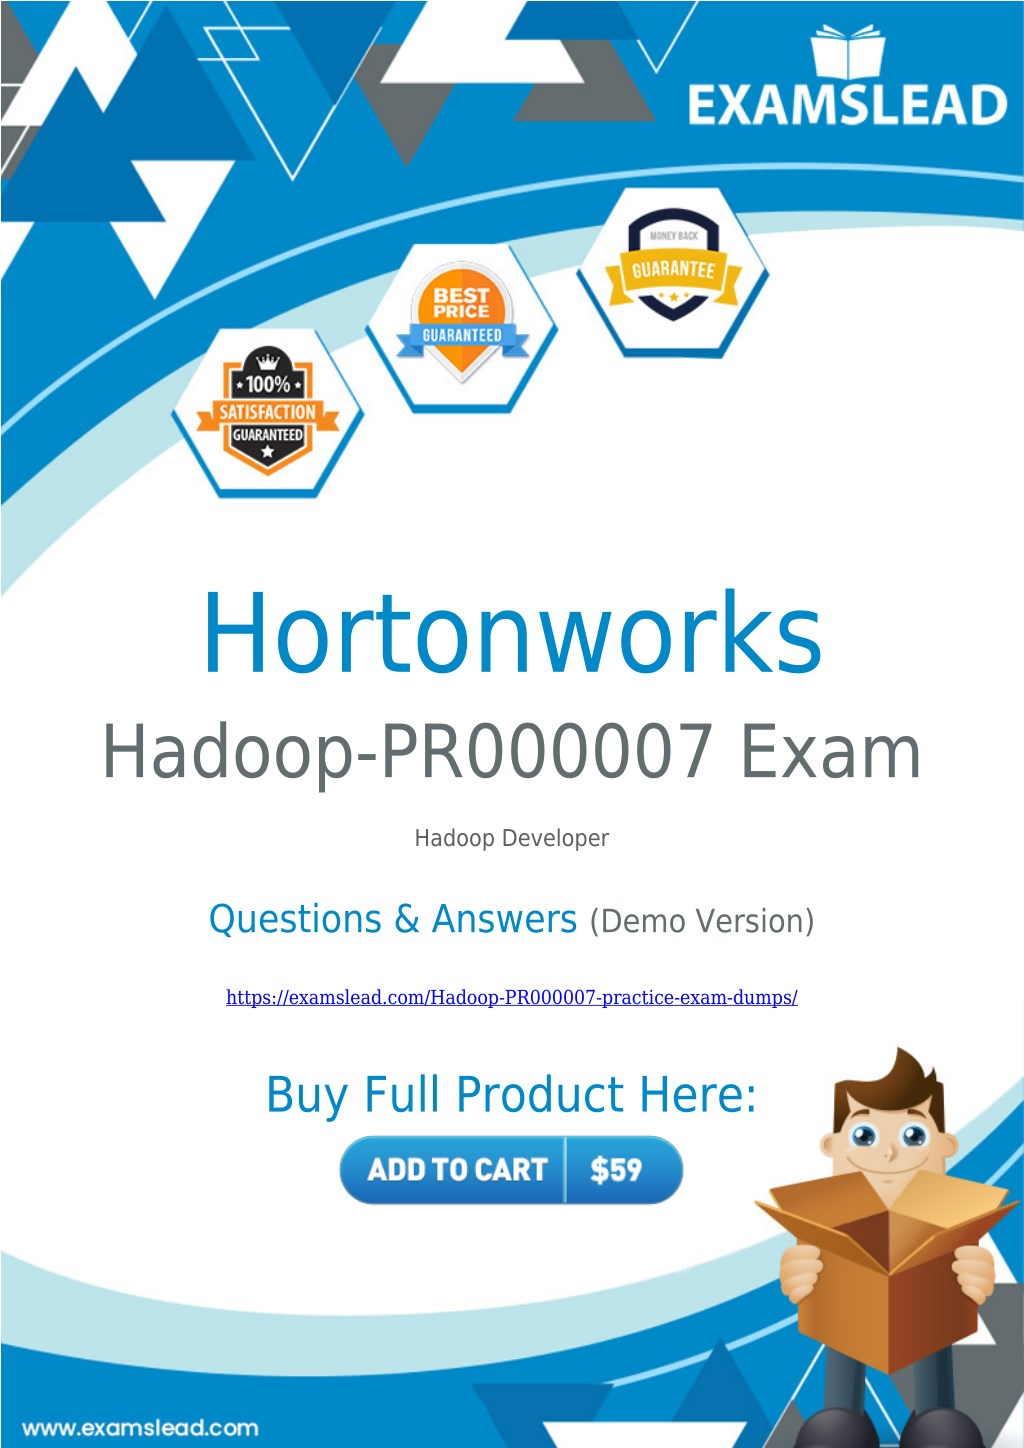 Mapr Certified Hadoop Developer Dumps - Best Photos and Description